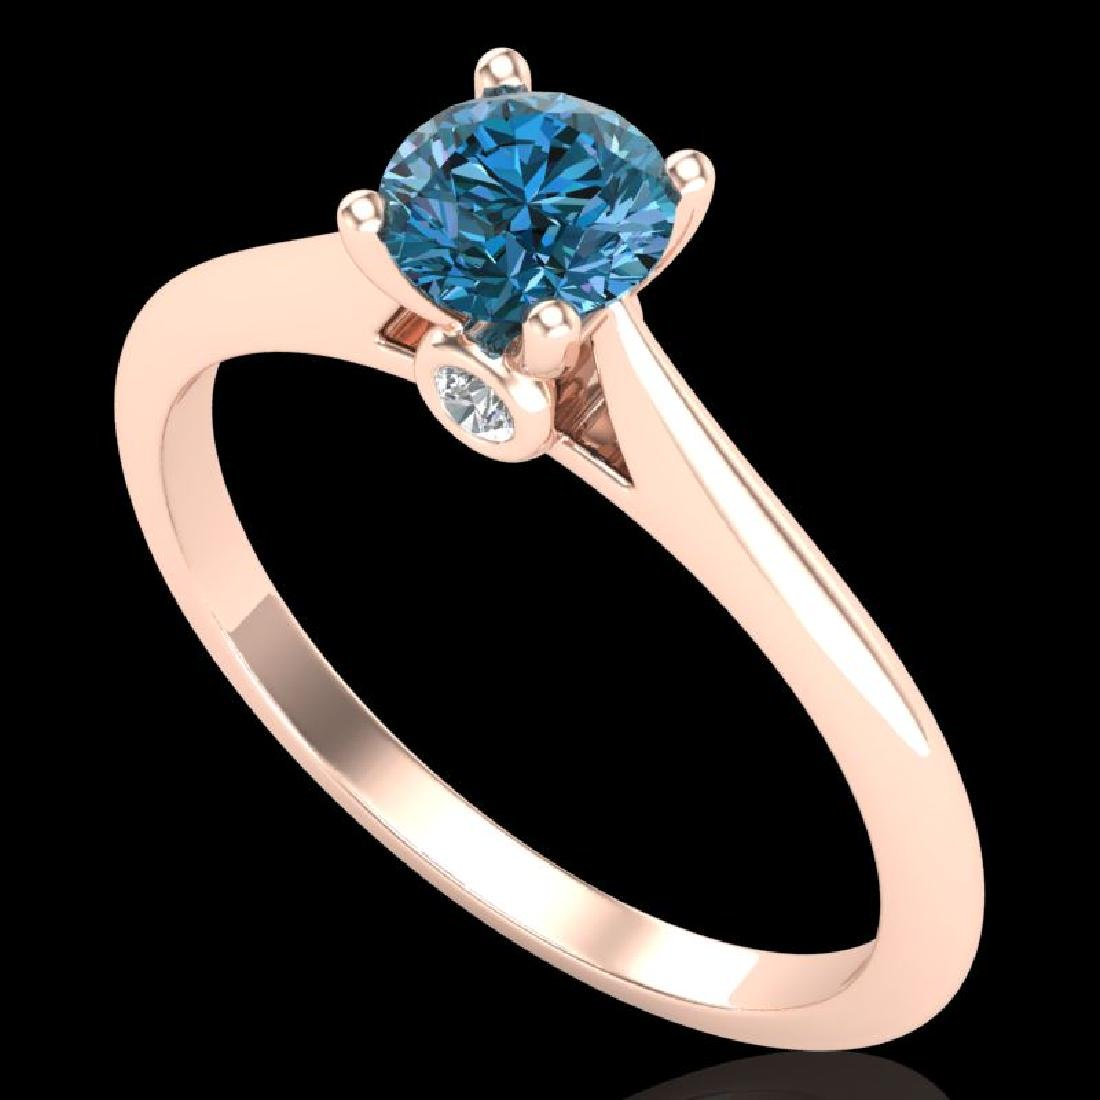 0.56 CTW Fancy Intense Blue Diamond Solitaire Art Deco